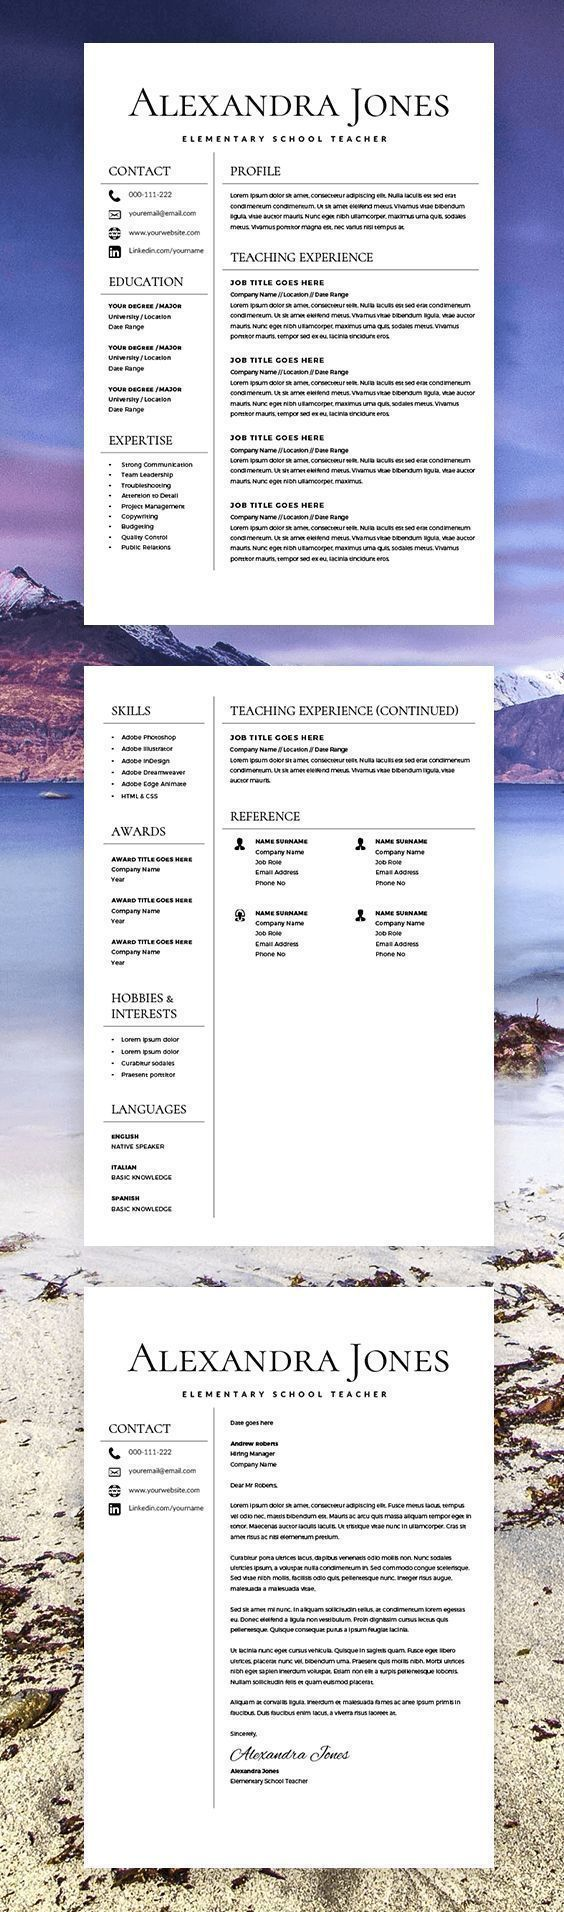 Teacher Resume Teacher CV CV